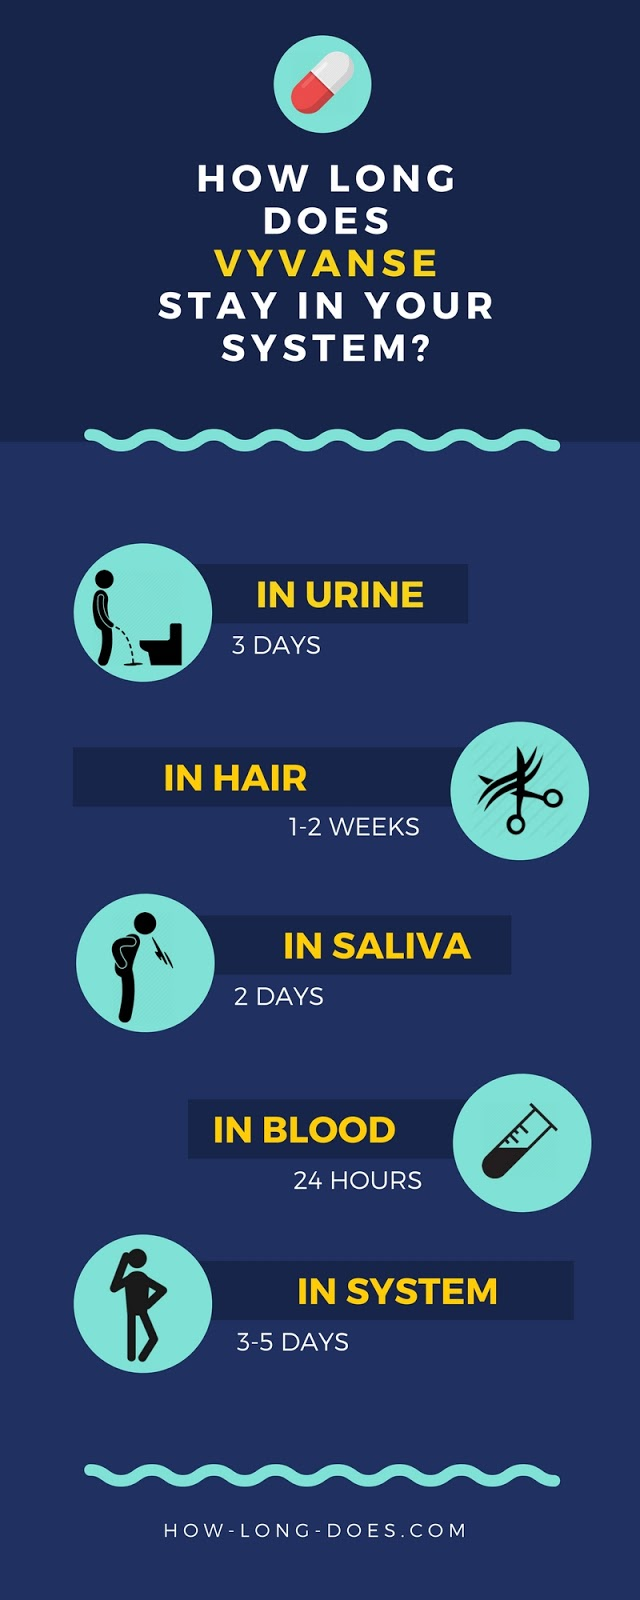 How long does Vyvanse stay in your system infographic